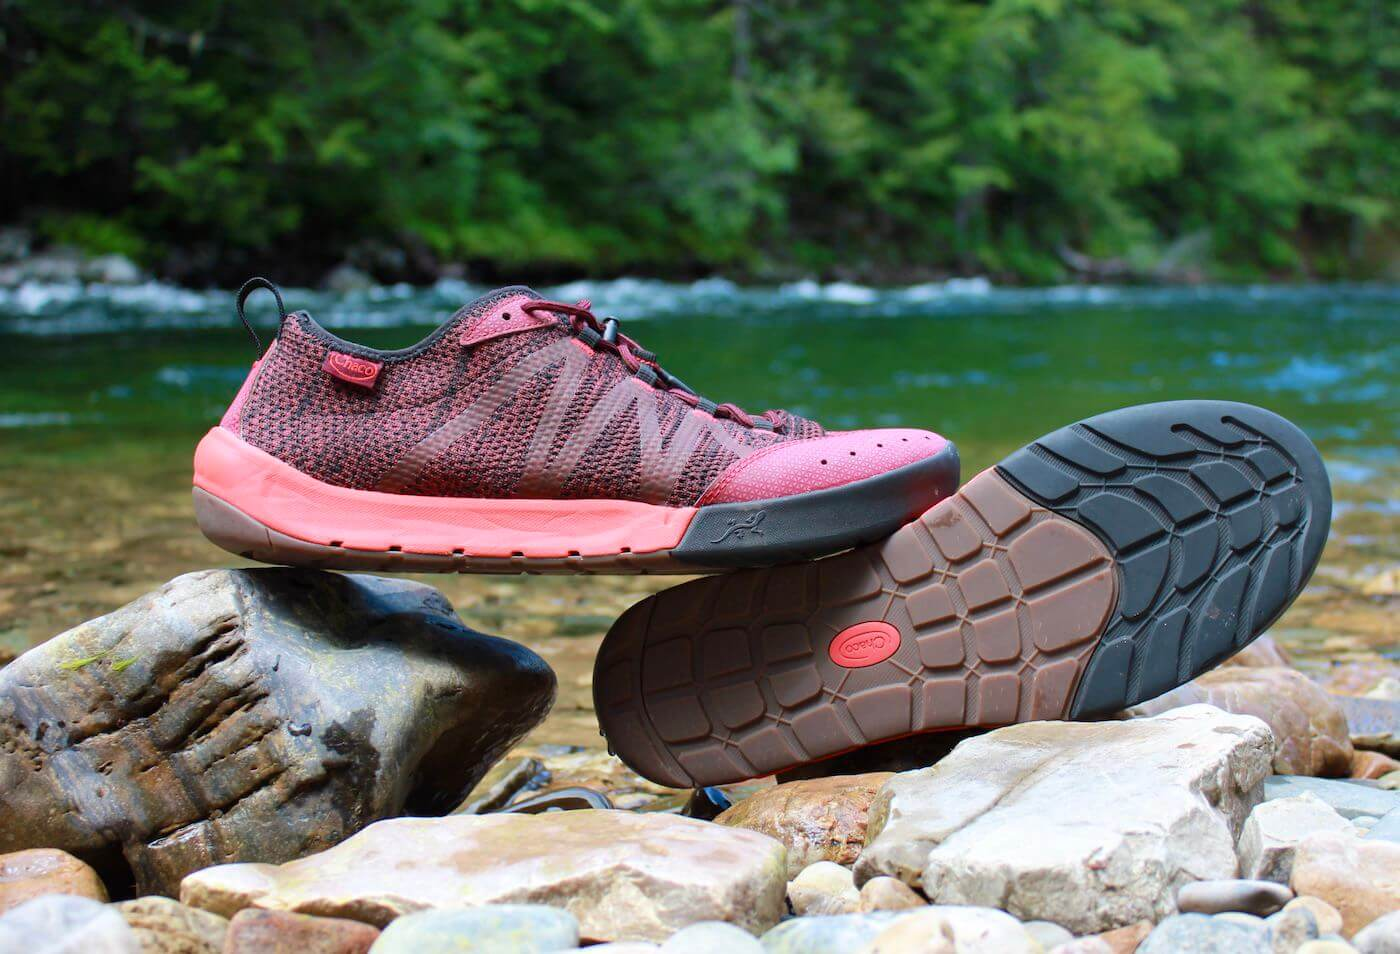 This review photo shows the Chaco Torrent Pro Water shoes next to a river.